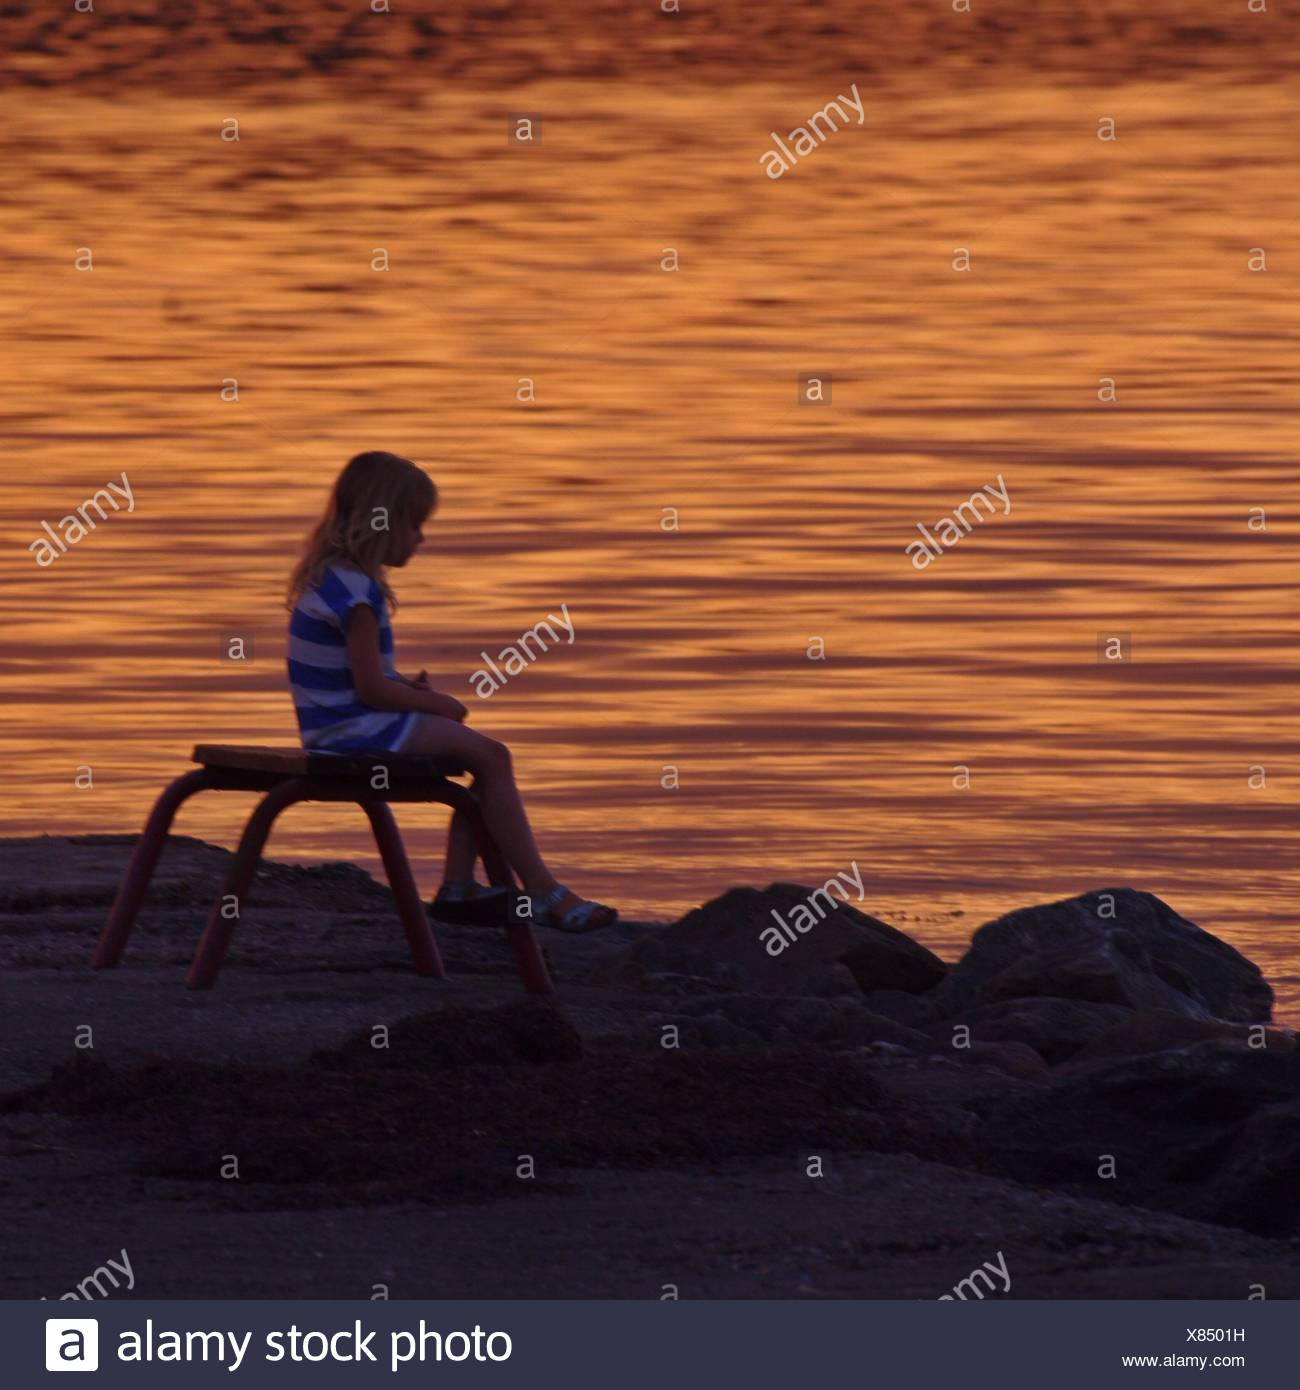 Girl Sitting On Bench By Water - Stock Image